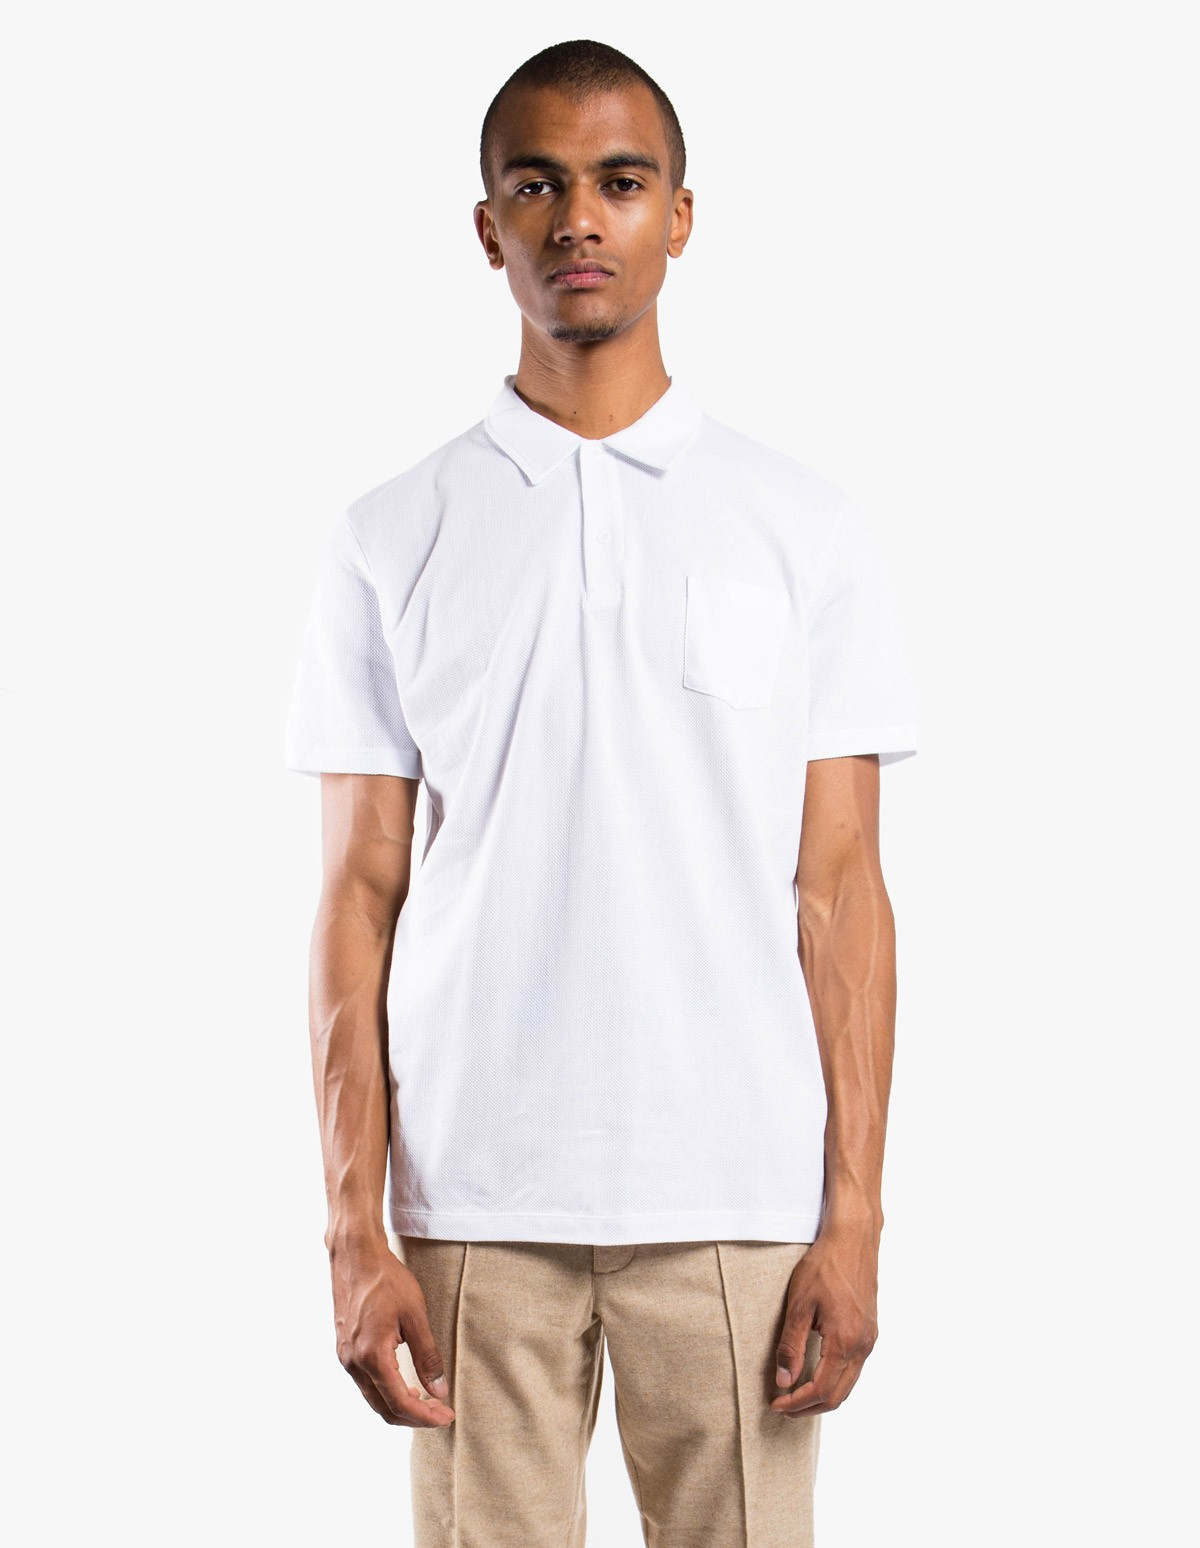 2b0bf910 Short Sleeve Riviera Polo in White - Sunspel | Afura Store